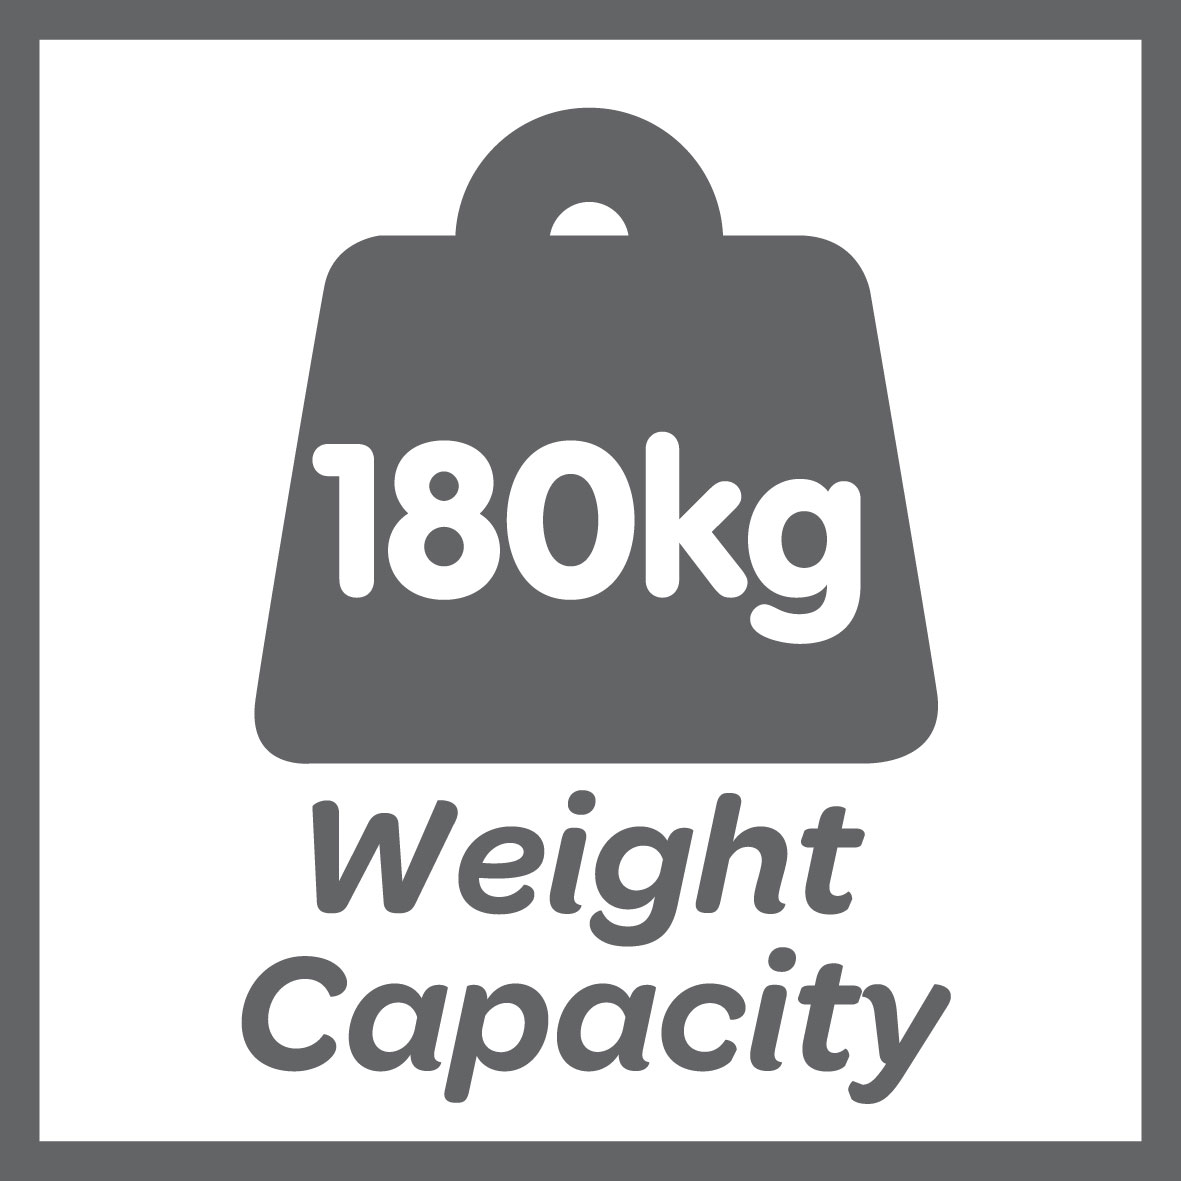 This product has a 180kg weight limit